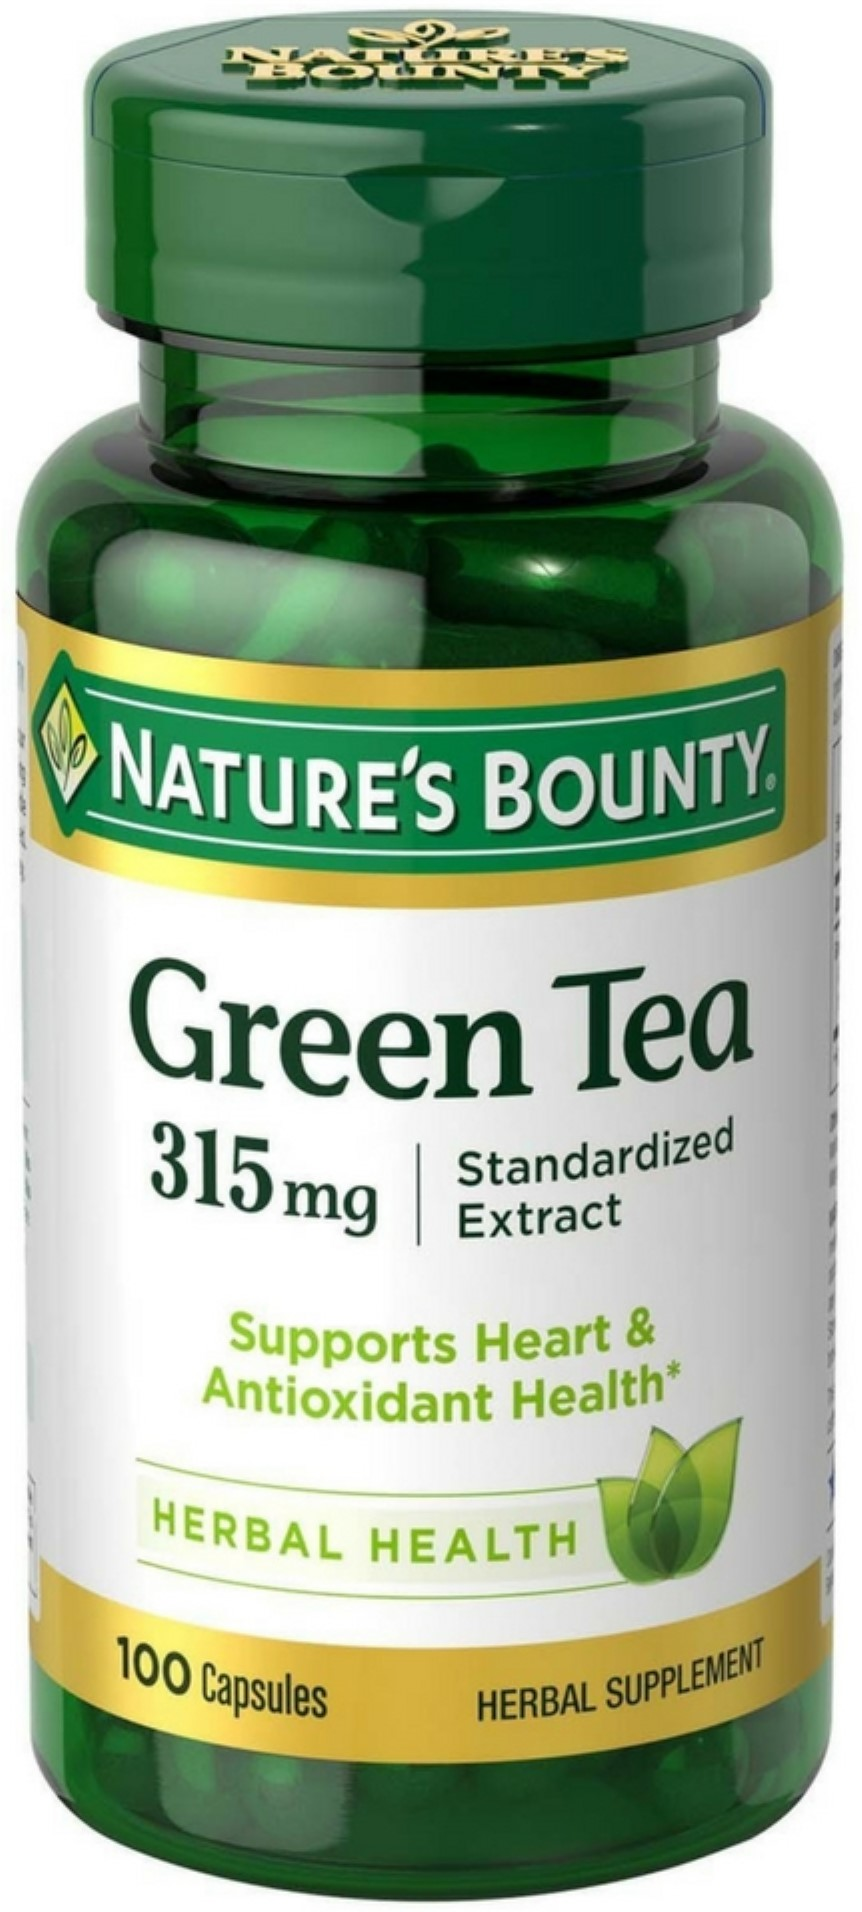 Nature's Bounty Green Tea Extract Weight Loss Supplement